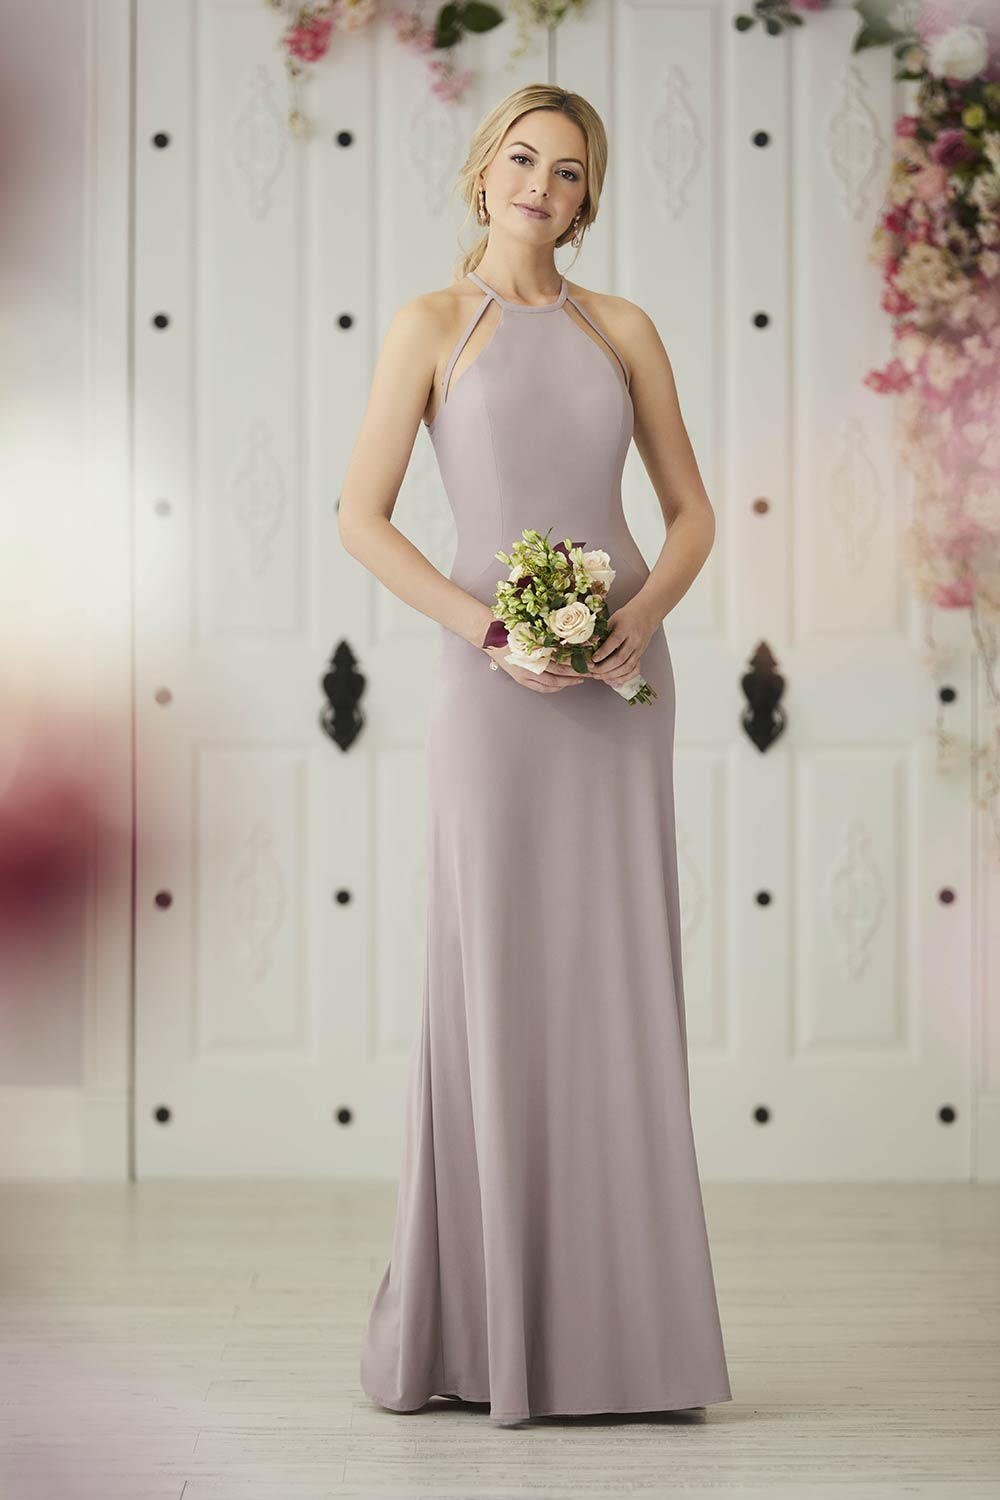 bridesmaid-dresses-jacquelin-bridals-canada-27295